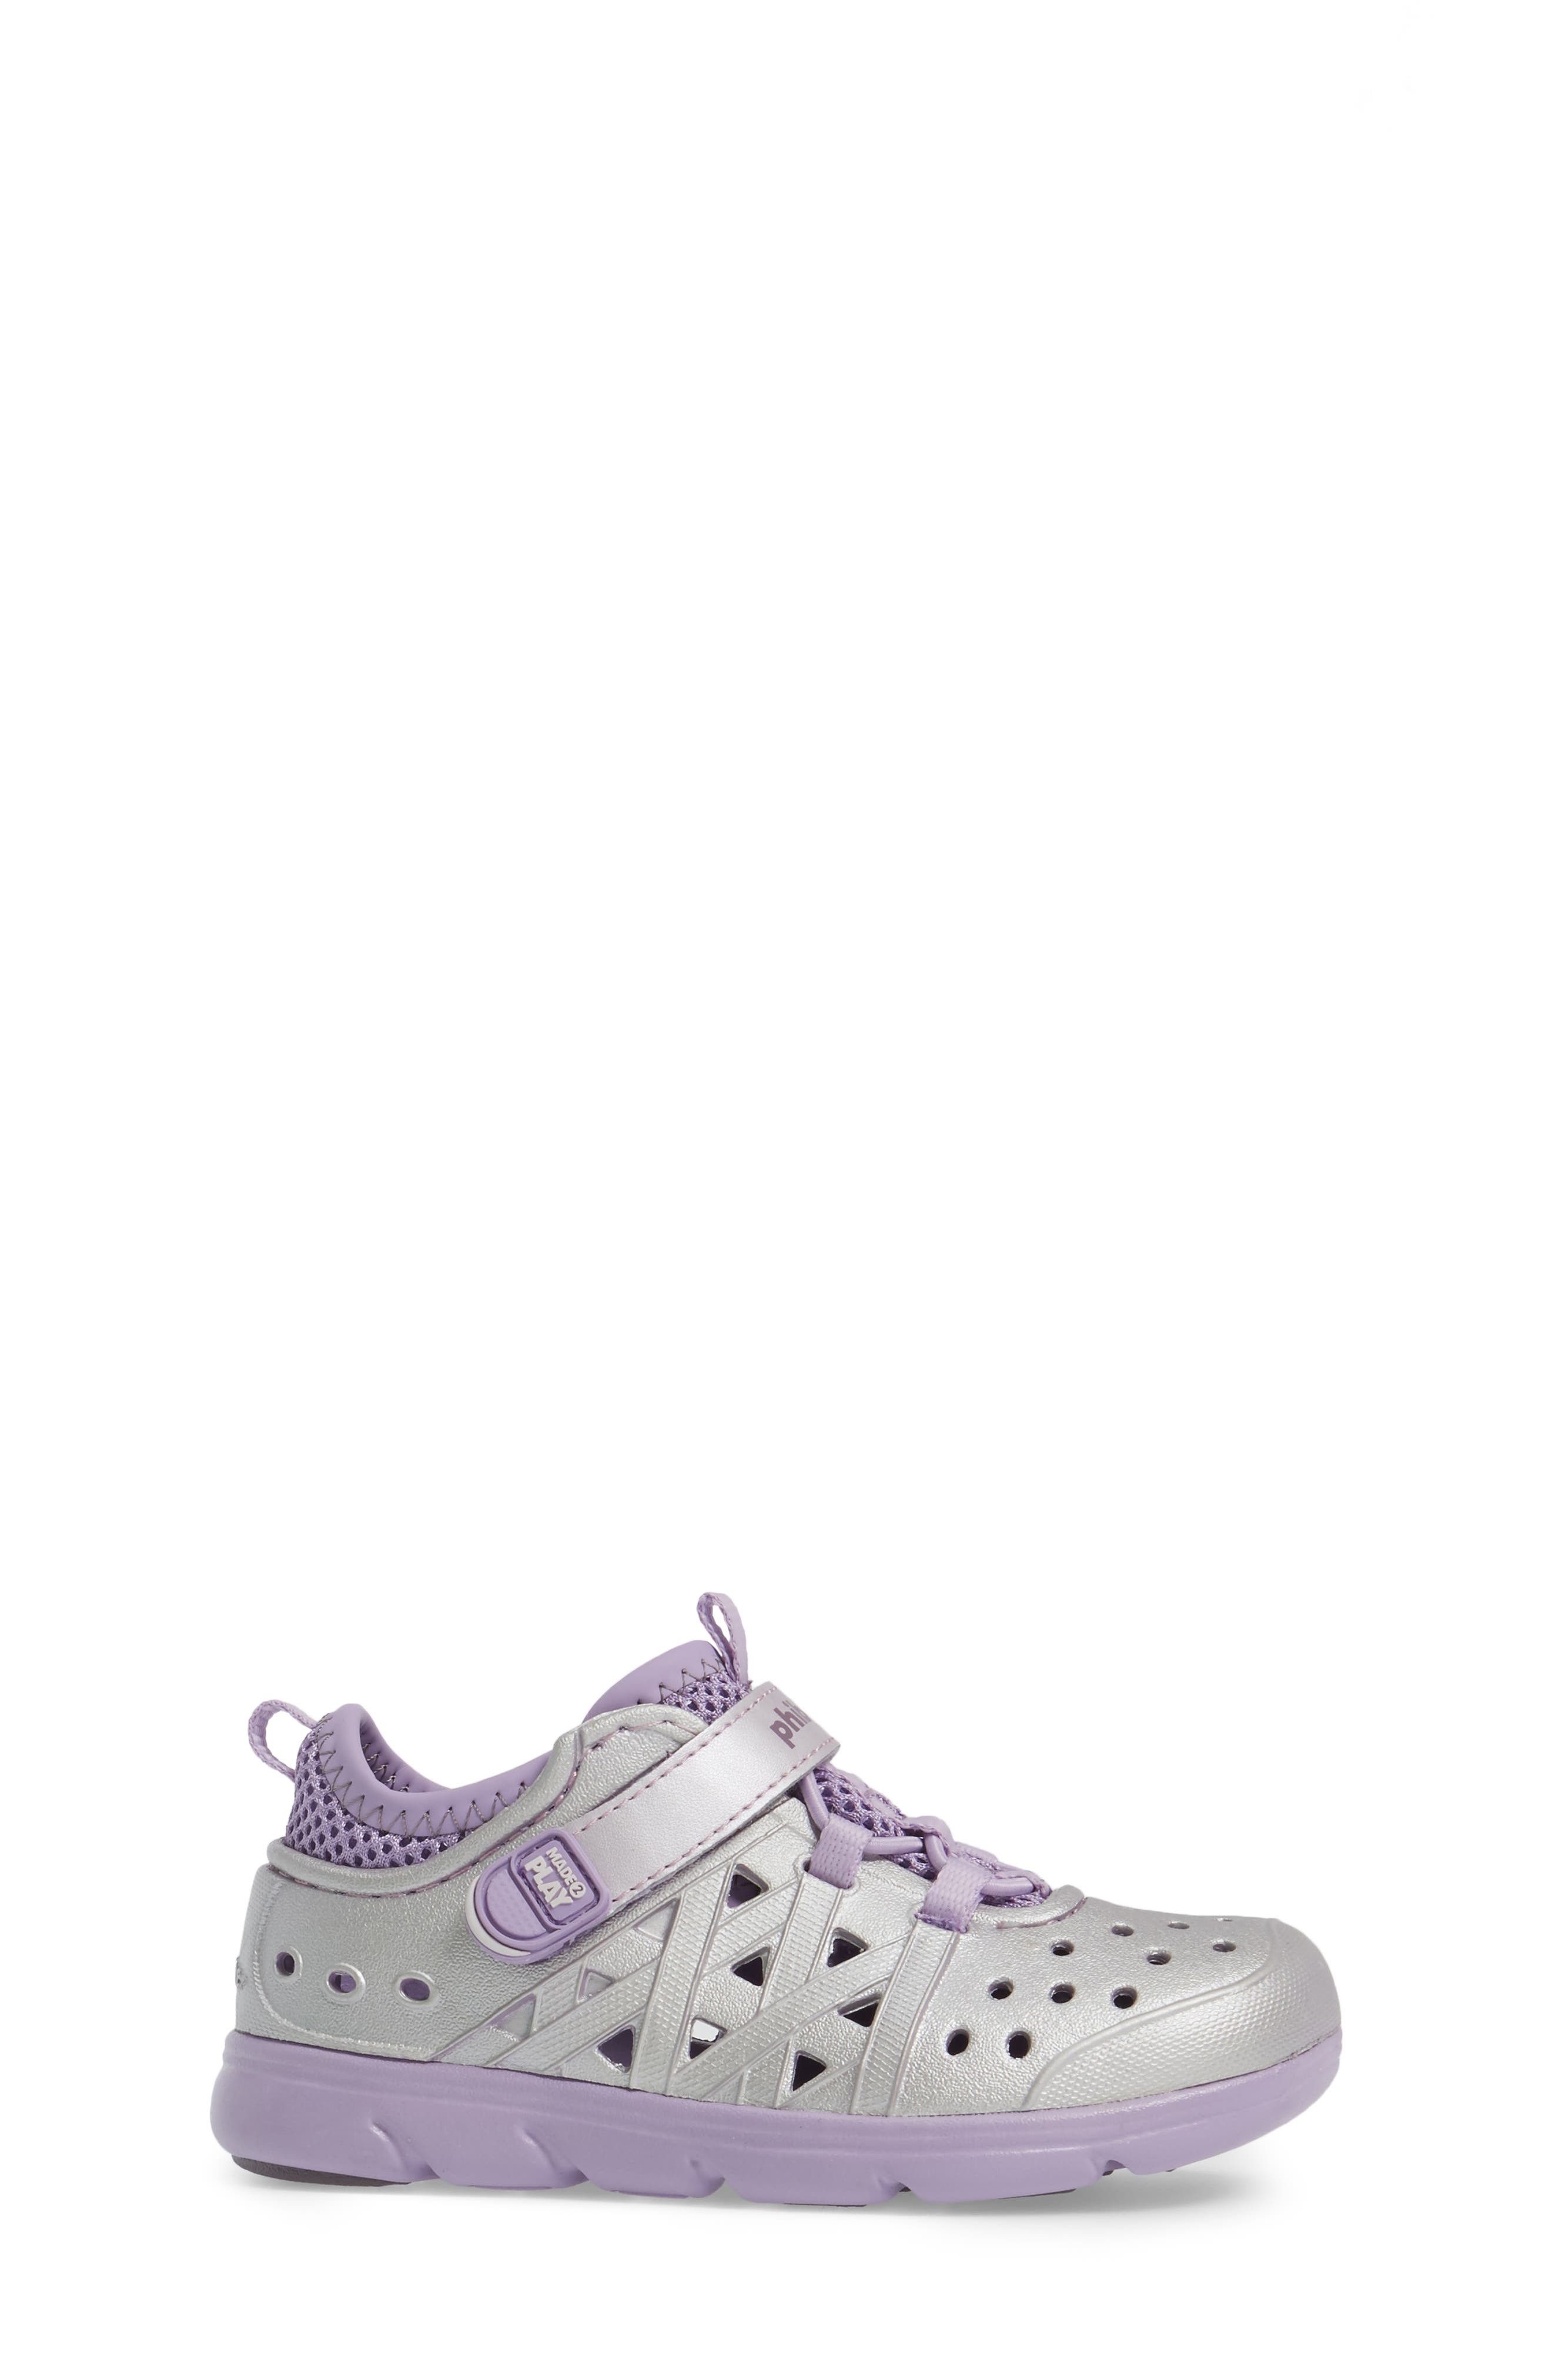 Made2Play<sup>®</sup> Phibian Sneaker,                             Alternate thumbnail 3, color,                             Purple Metallic